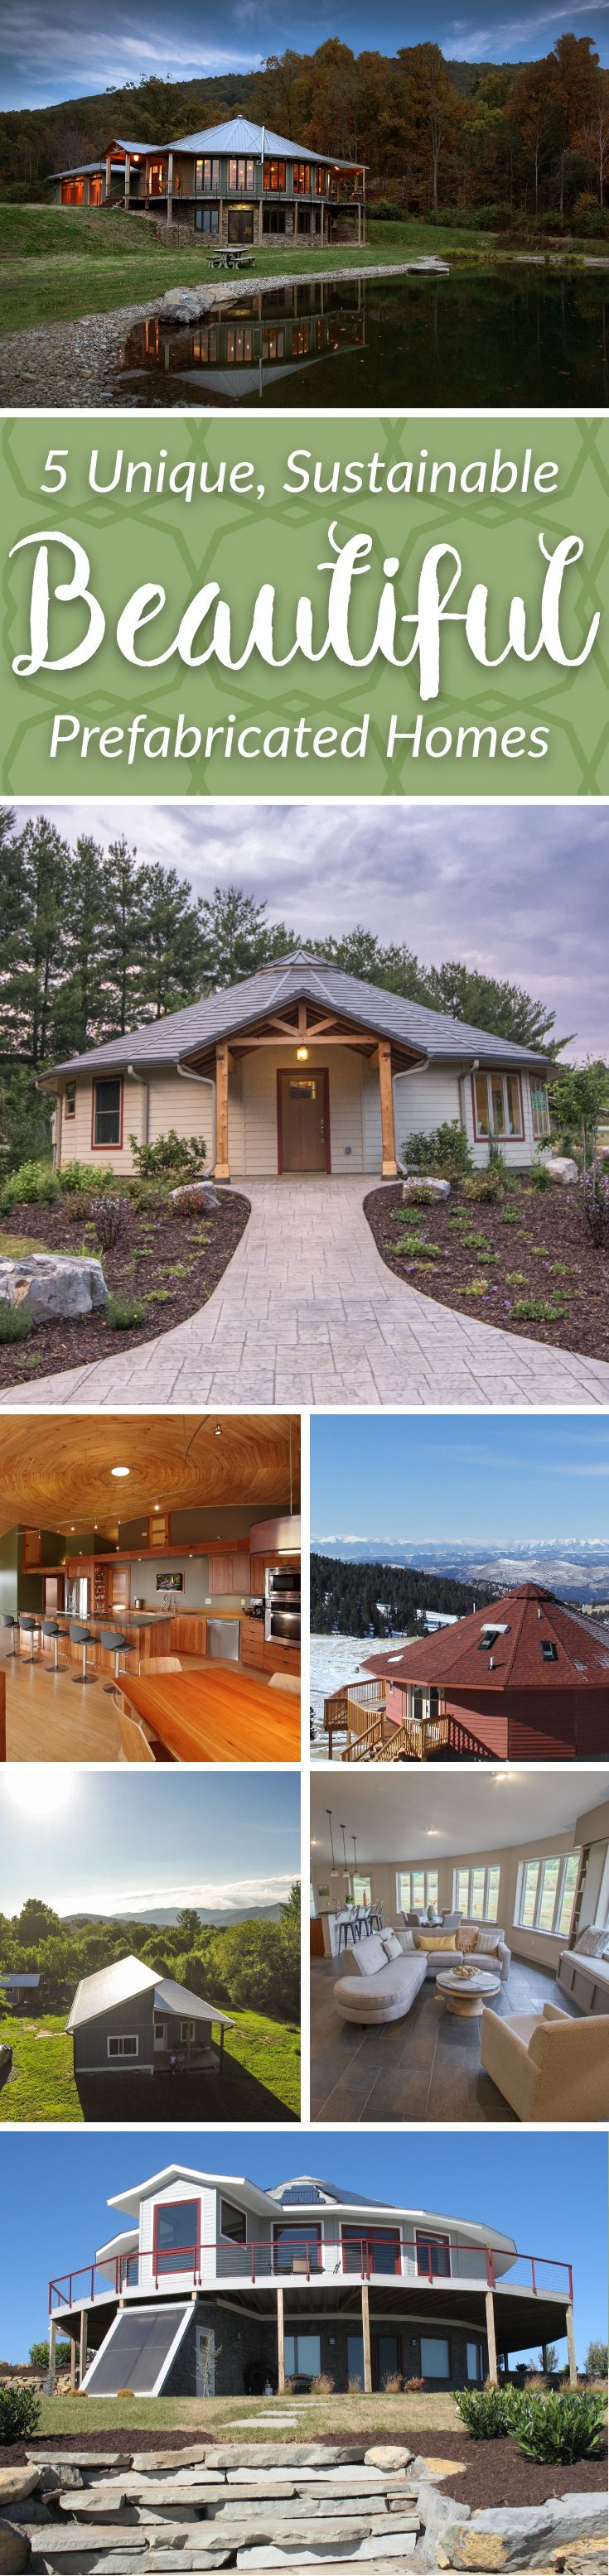 best 25 prefabricated home ideas on pinterest prefab homes check out five of our beautiful and sustainable prefabricated homes